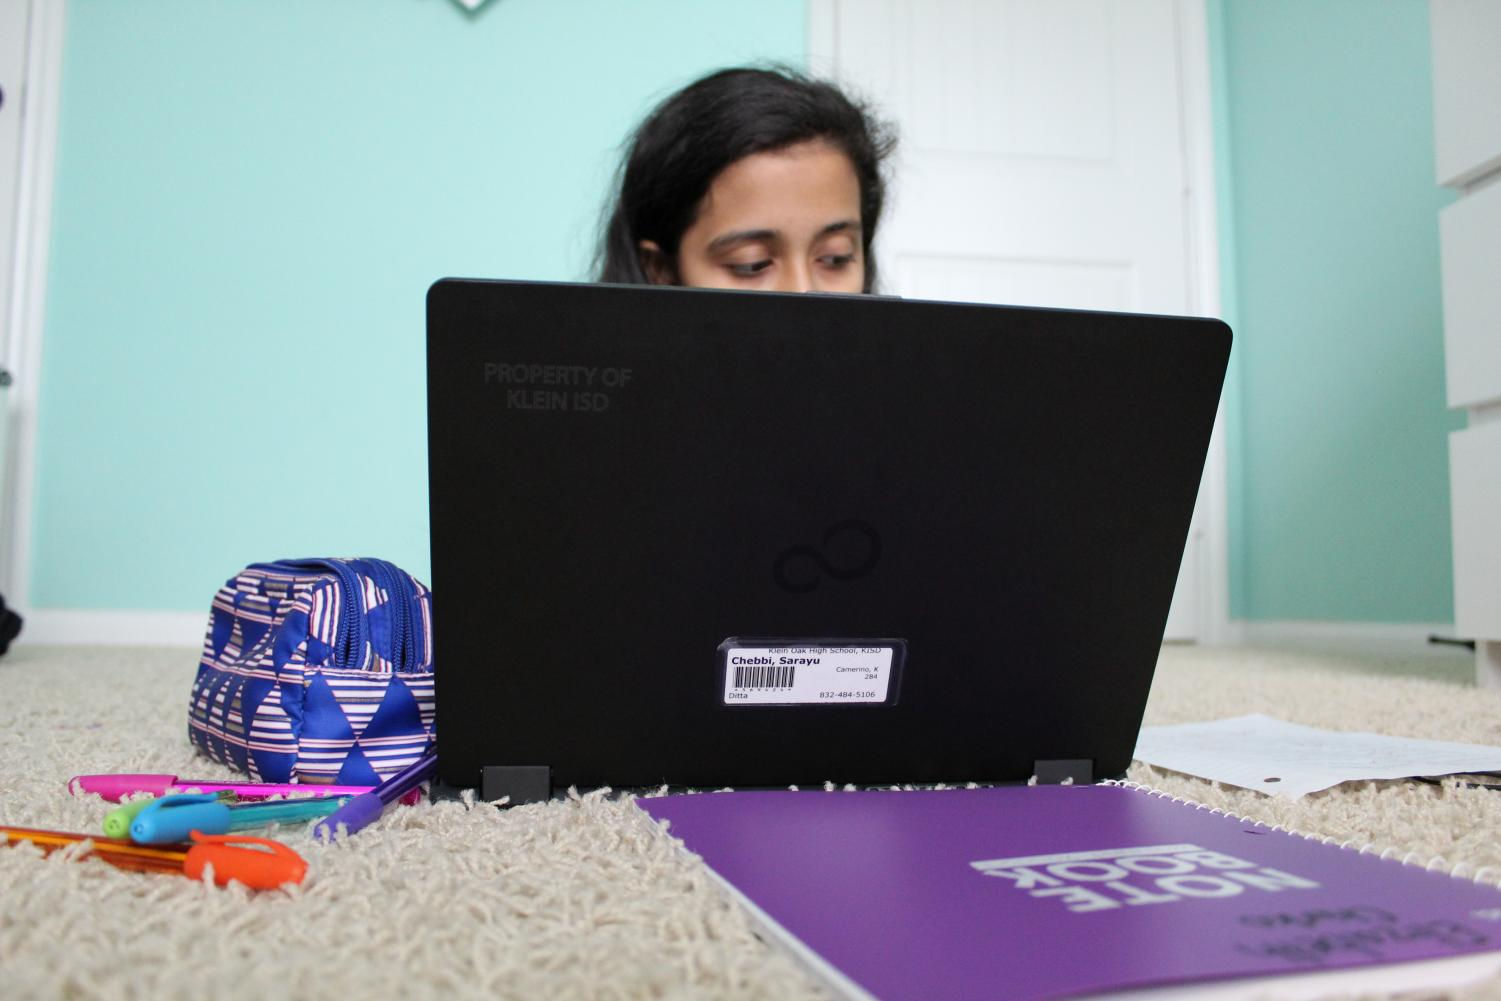 Sophomore Sarayu Chebbi studies hard in the comfort of her home to prepare for upcoming finals.